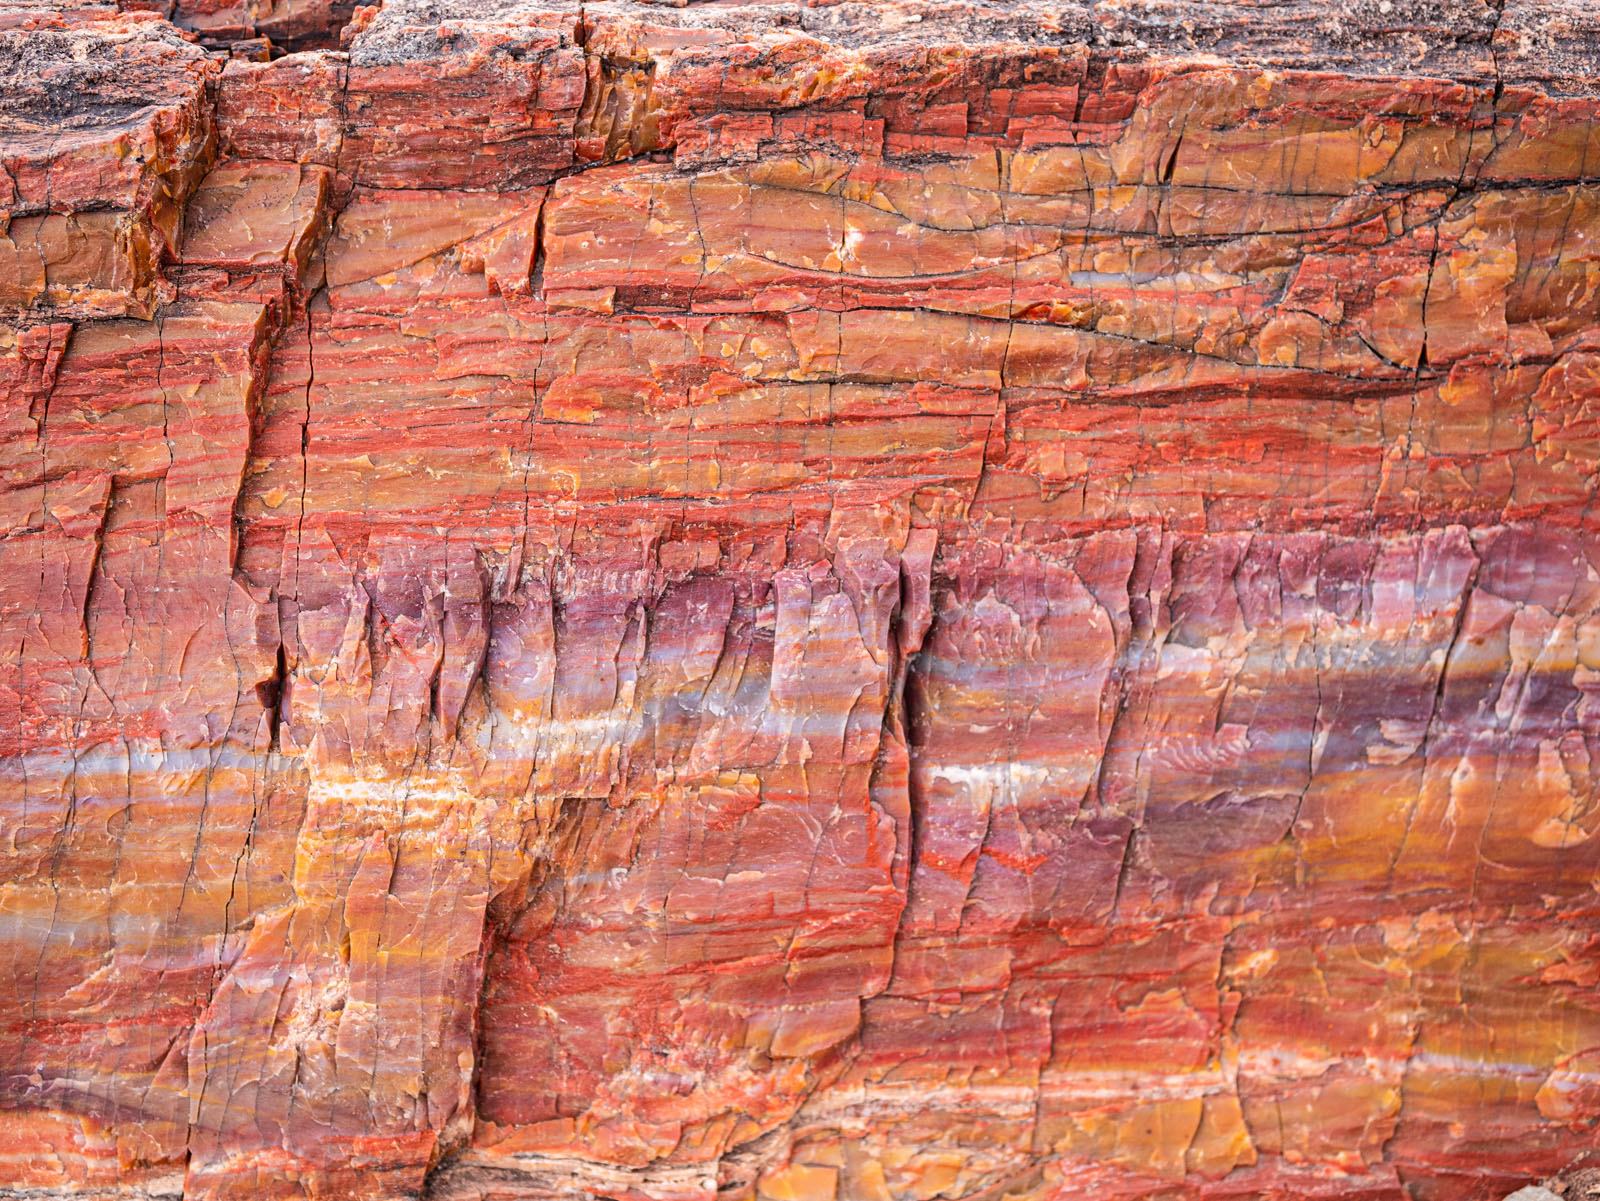 CO_Vacationmoon_PetrifiedWoodMacros-1010525.jpg